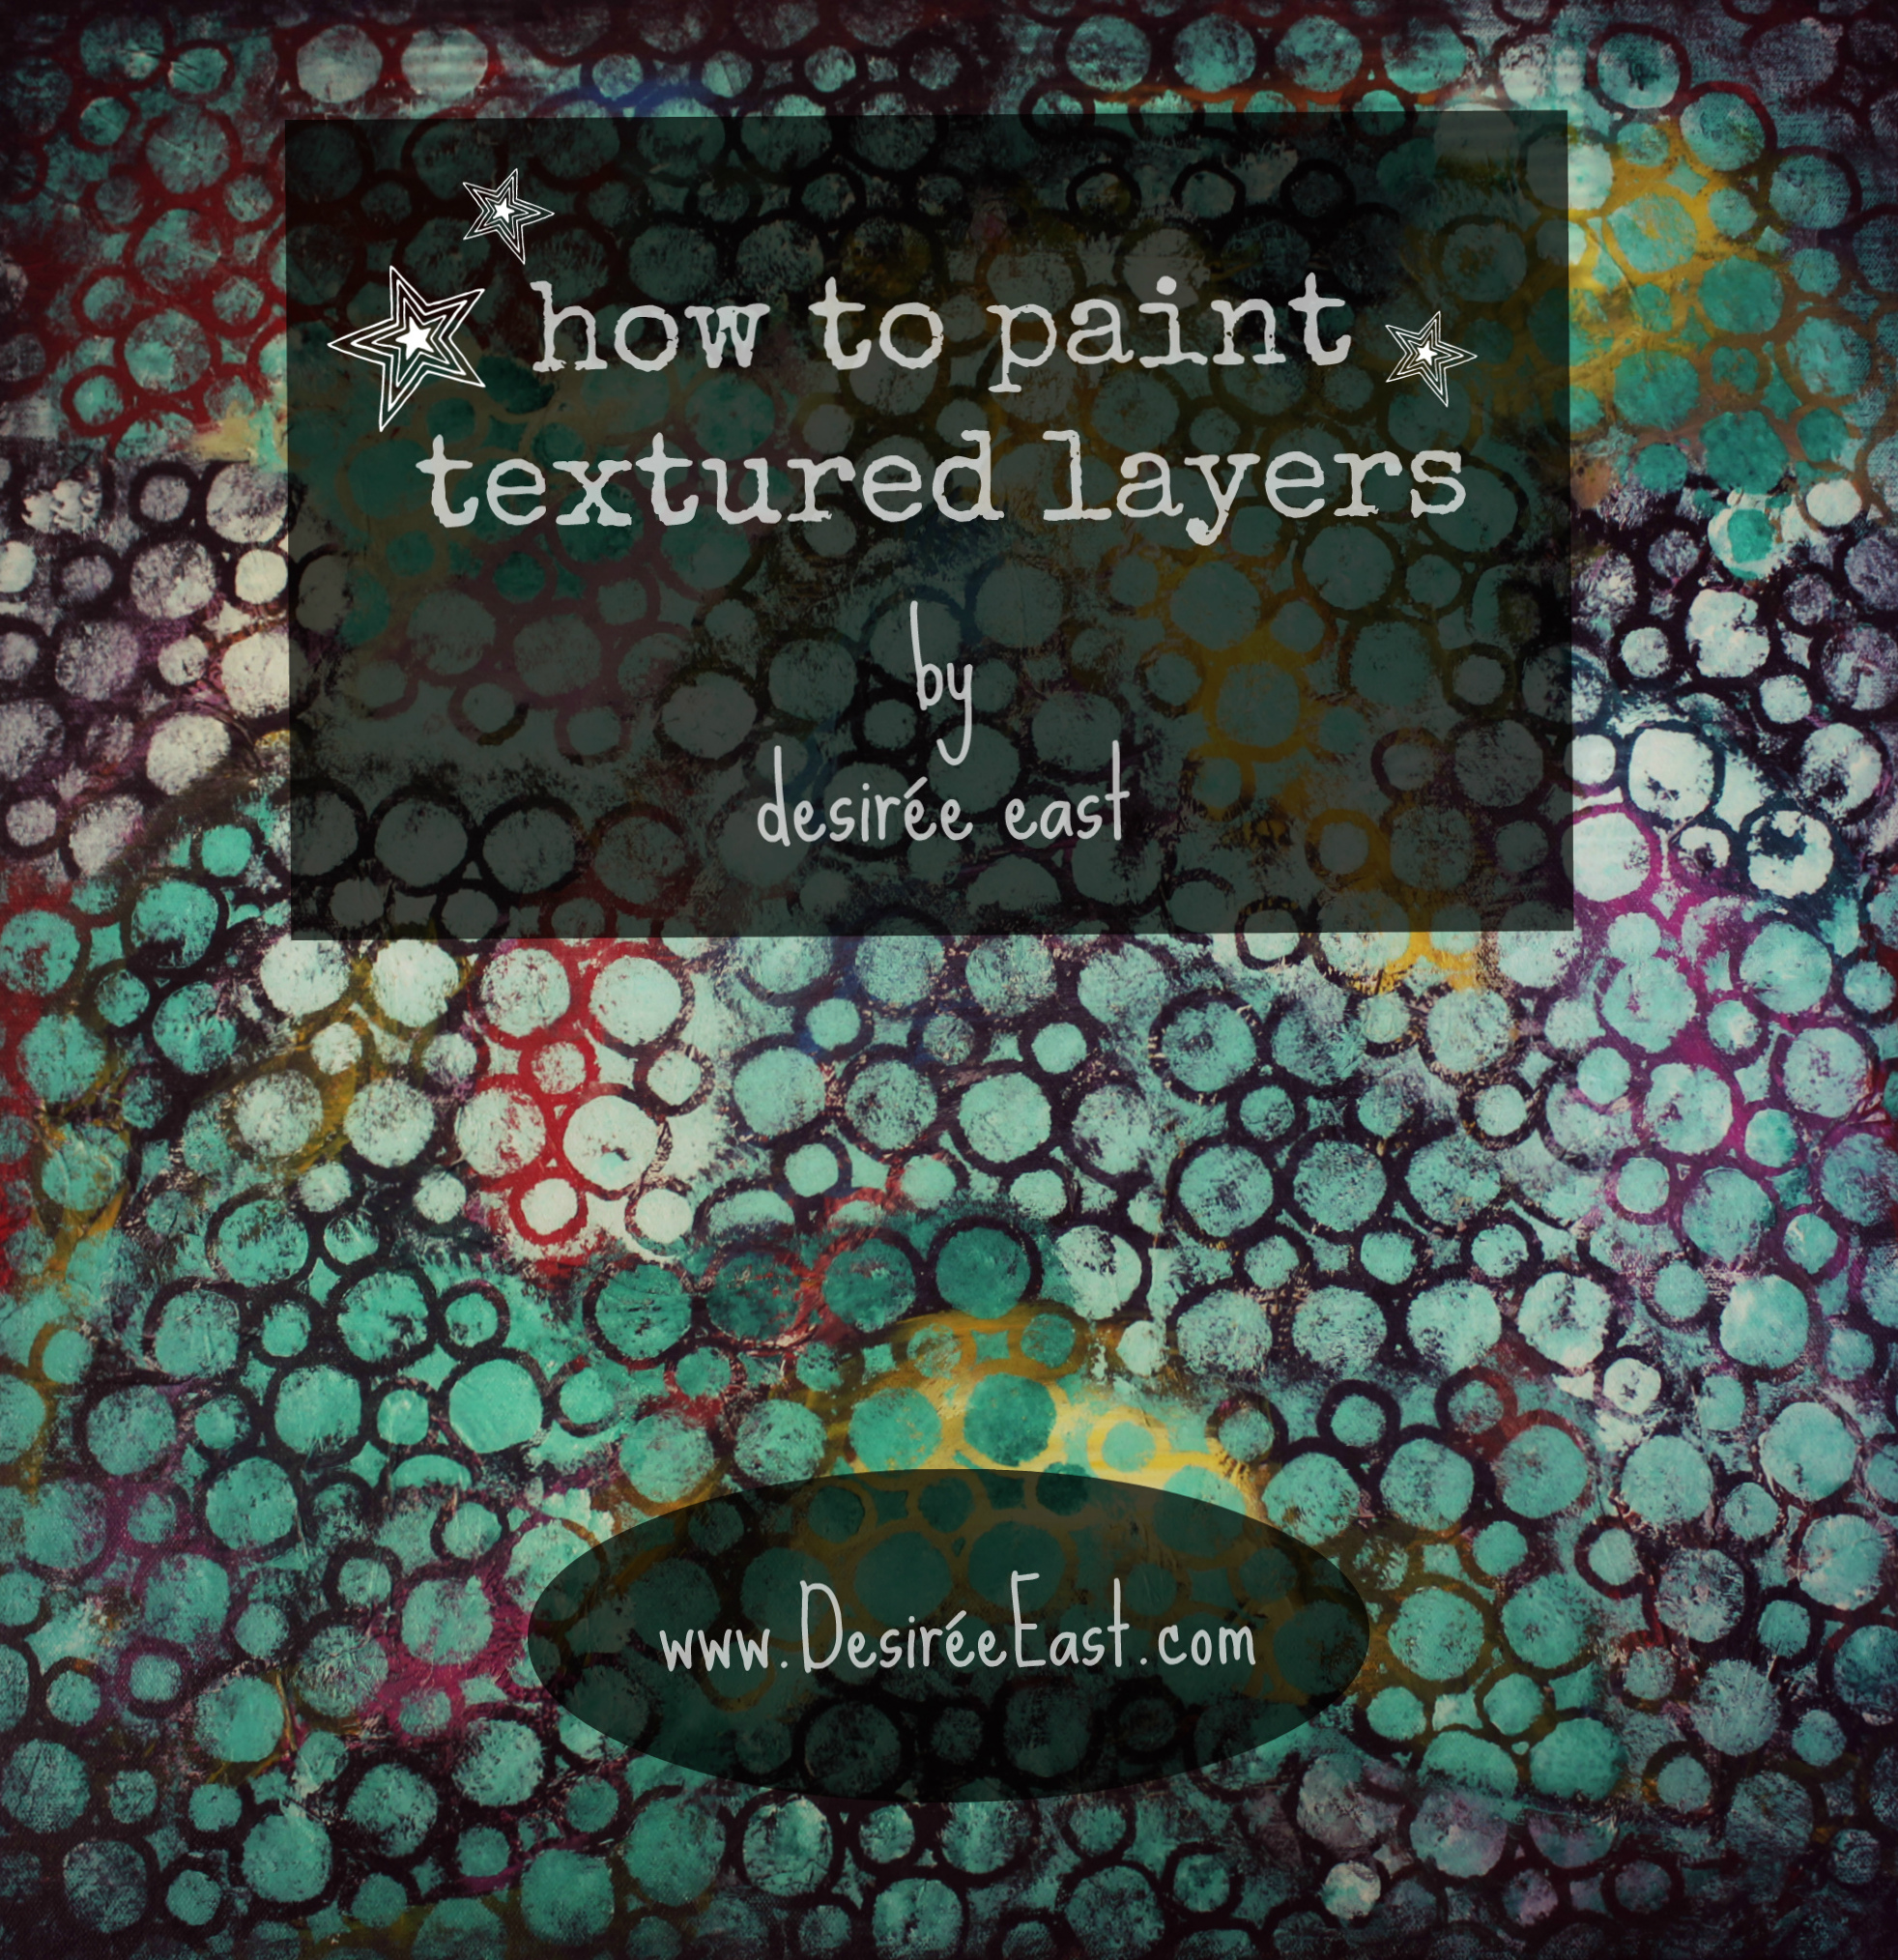 how to paint textured layers by desiree east